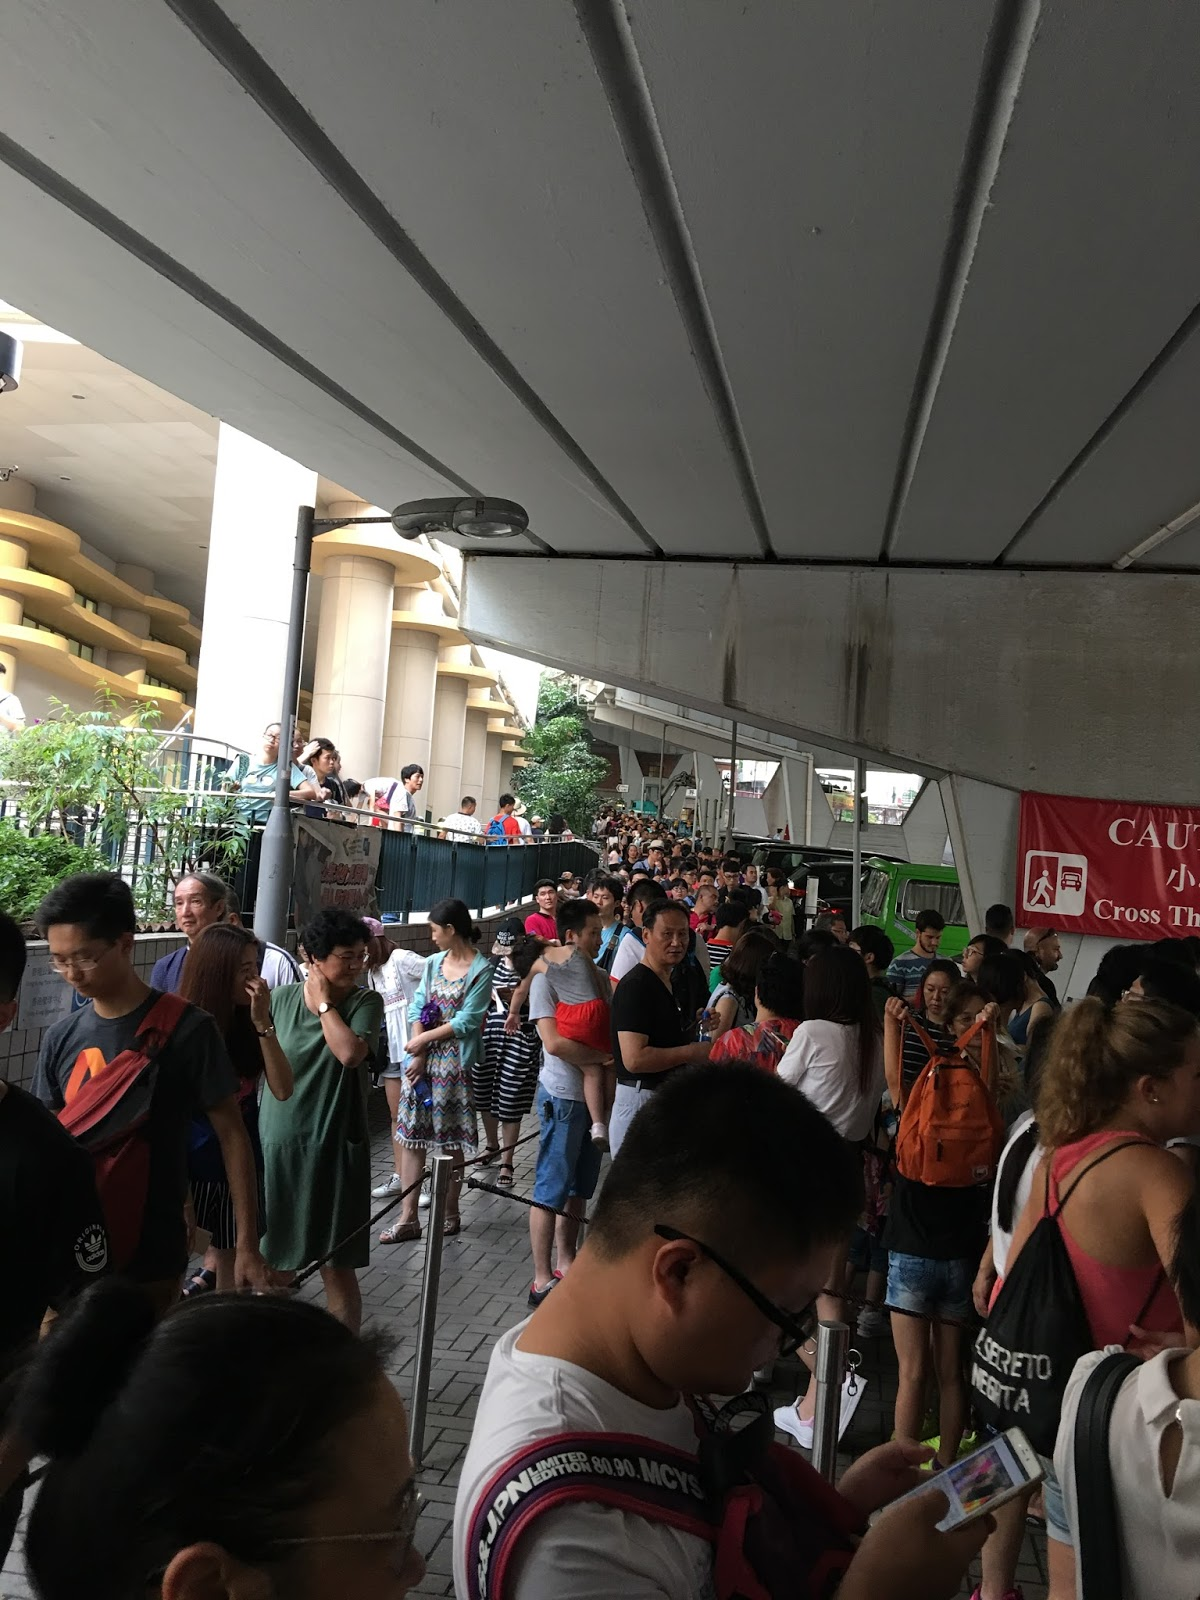 Queue for Victoria Peak Tram - Aspiring Londoner